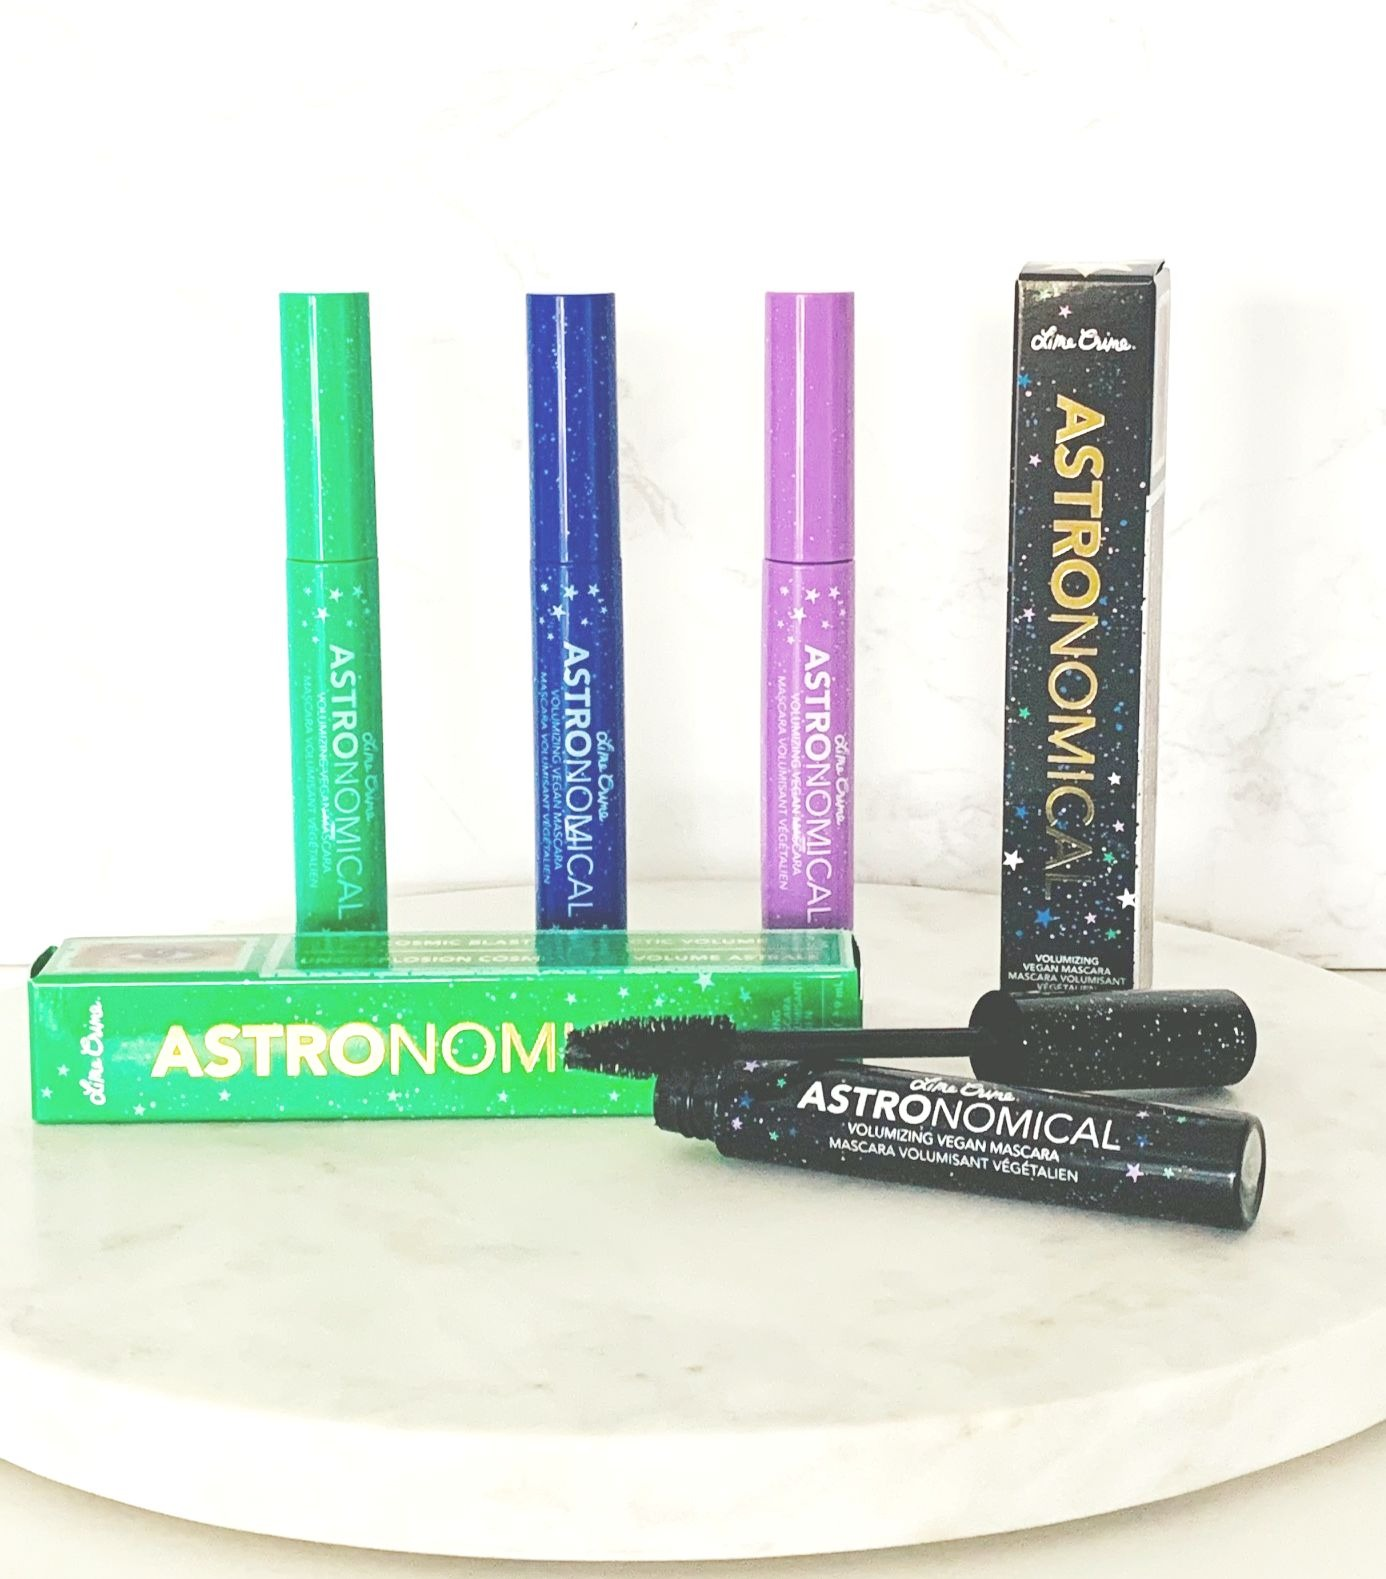 Lime Crime knows how to lift our spirits with their colourful Astronomical mascaras!